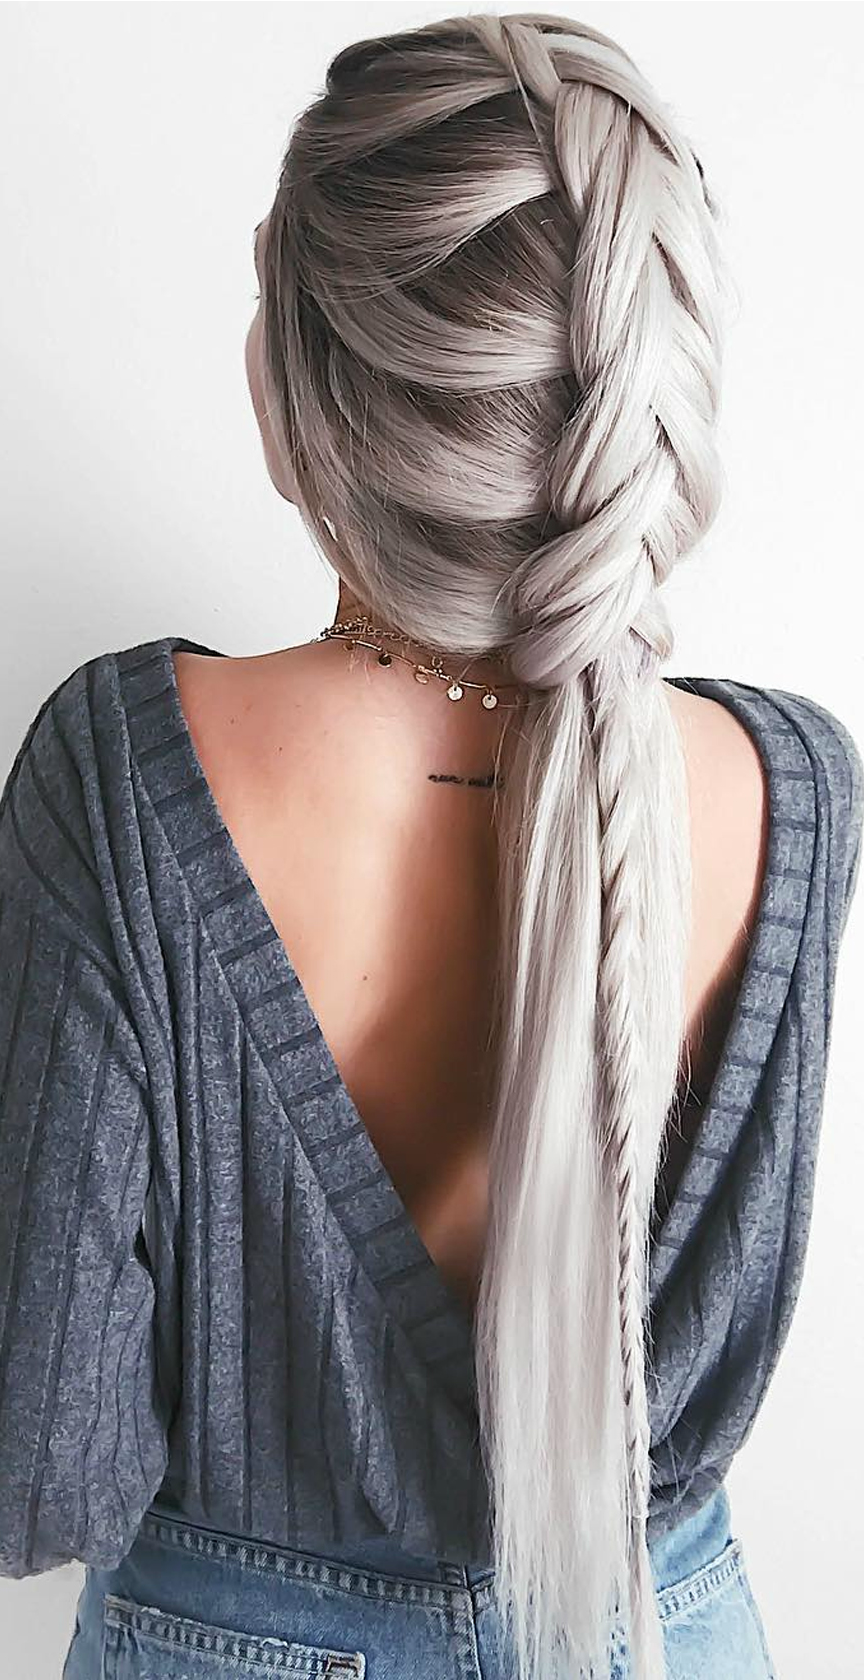 Sweetest dreams charcoal grey backless sweater top hair style